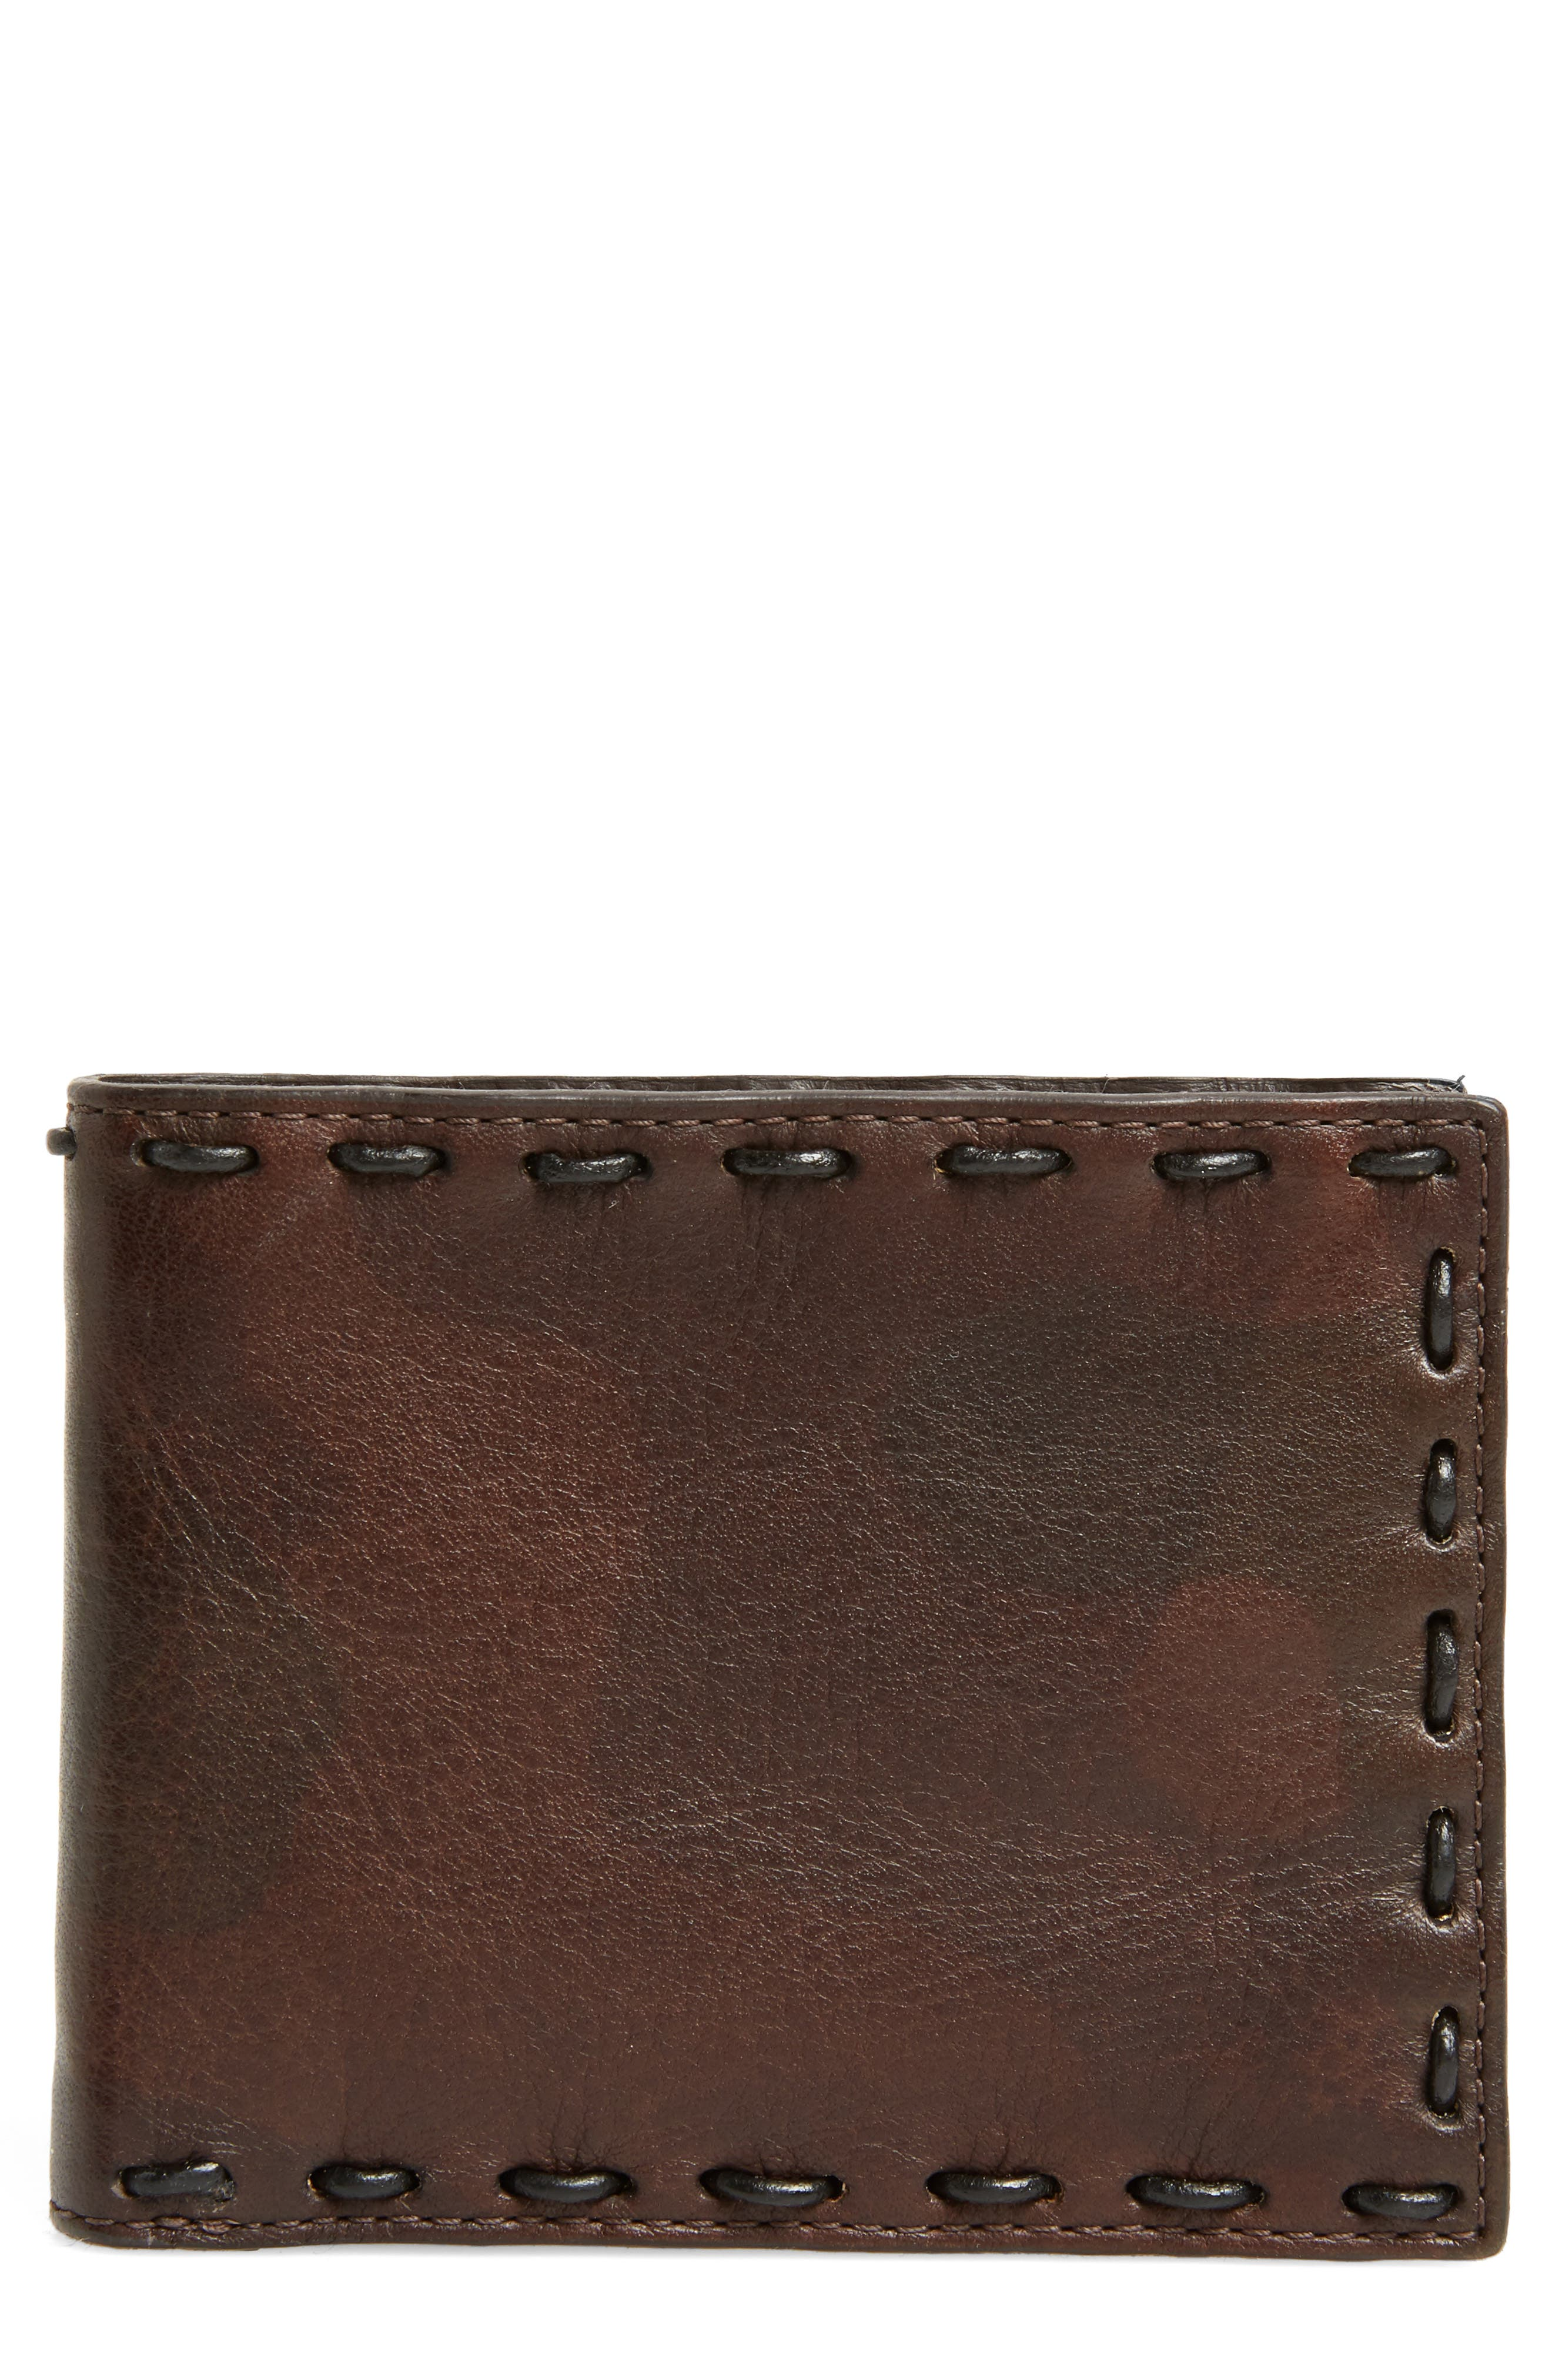 Marble Pickstitched Leather Wallet,                             Main thumbnail 1, color,                             Distressed Brown